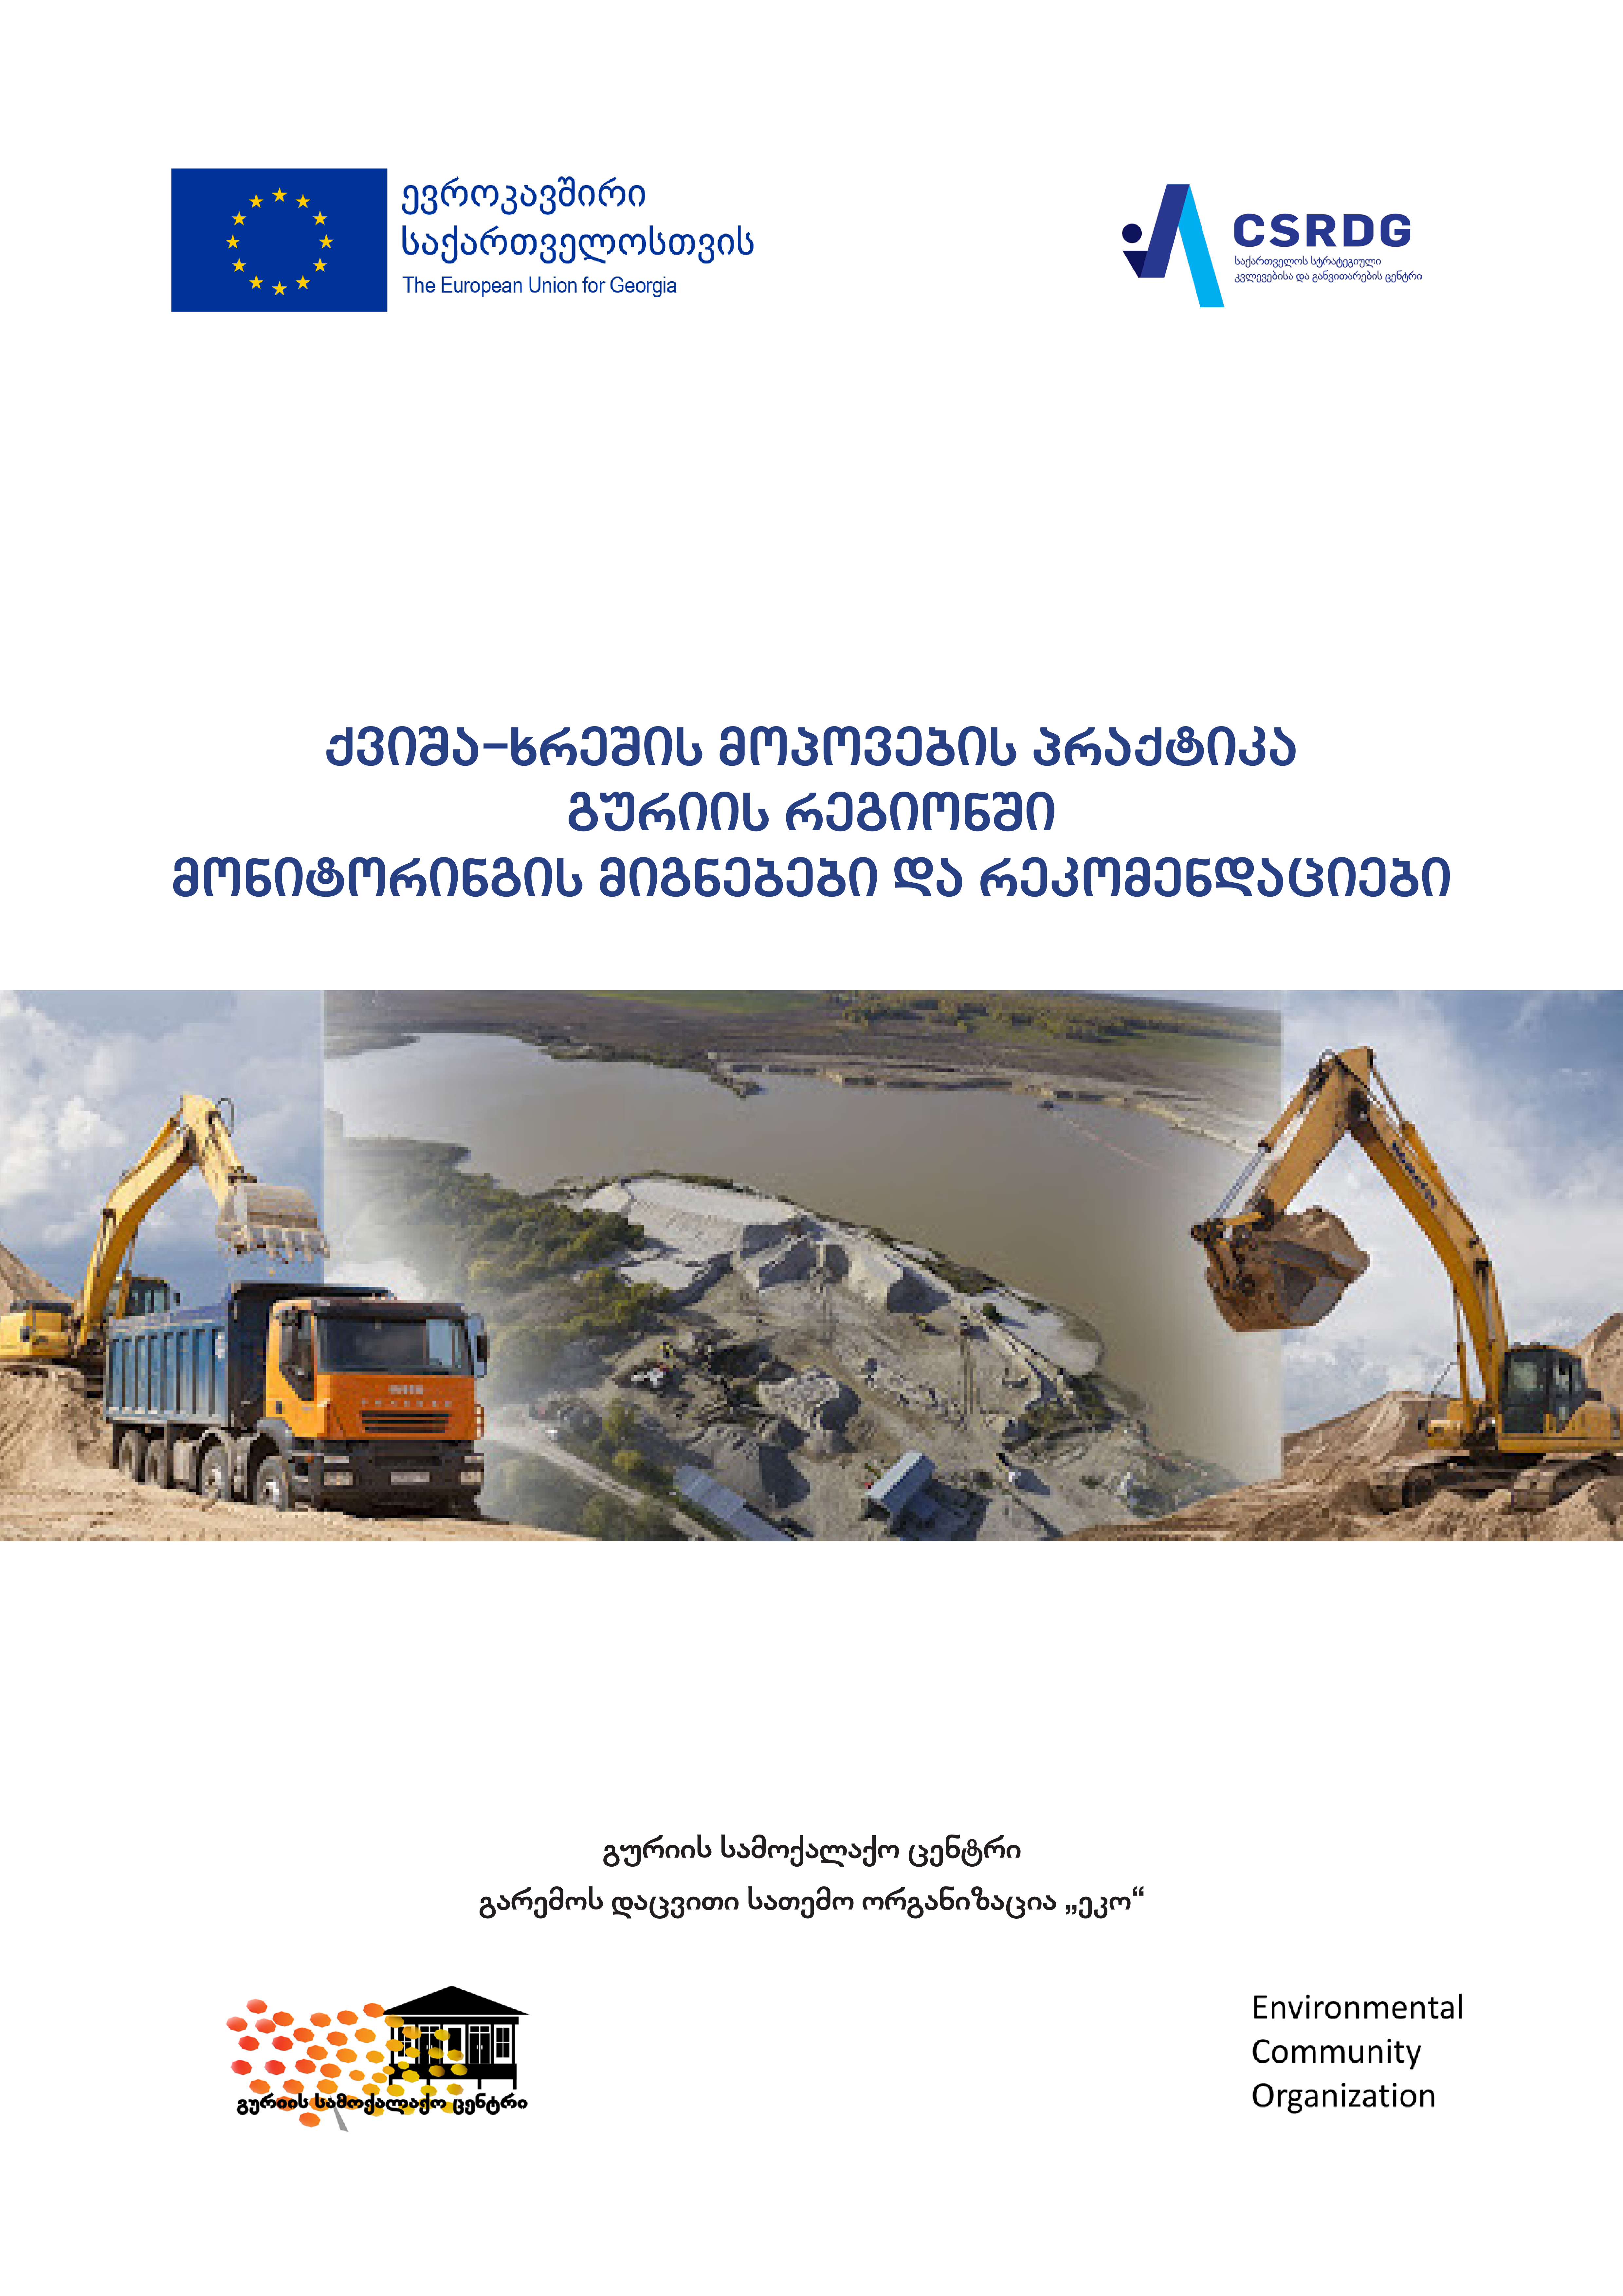 Sand-gravel extraction practice in Guria region, monitoring findings and recommendations